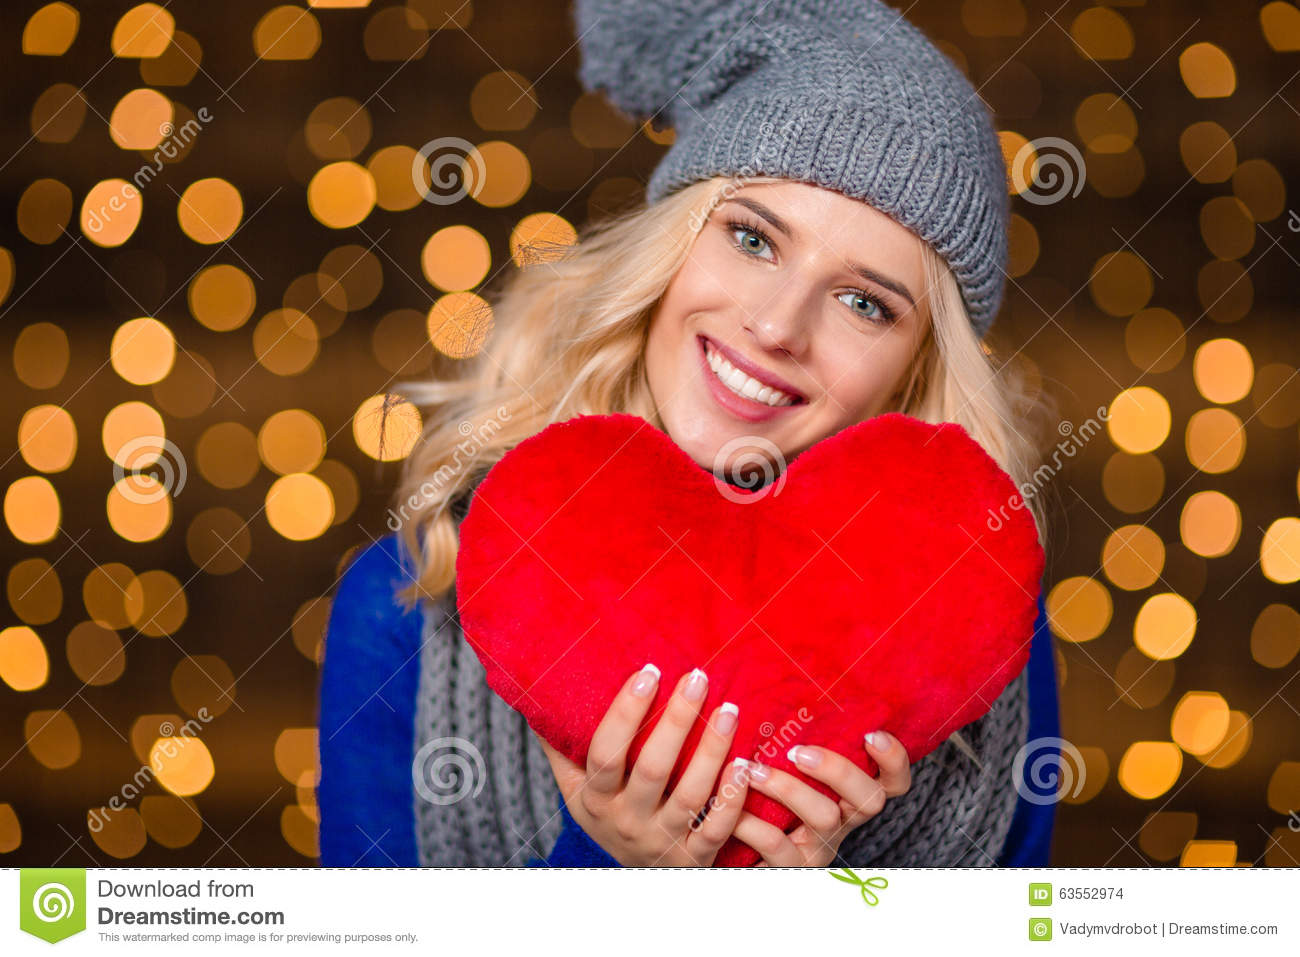 Happy woman holding red heart over holidays lights background